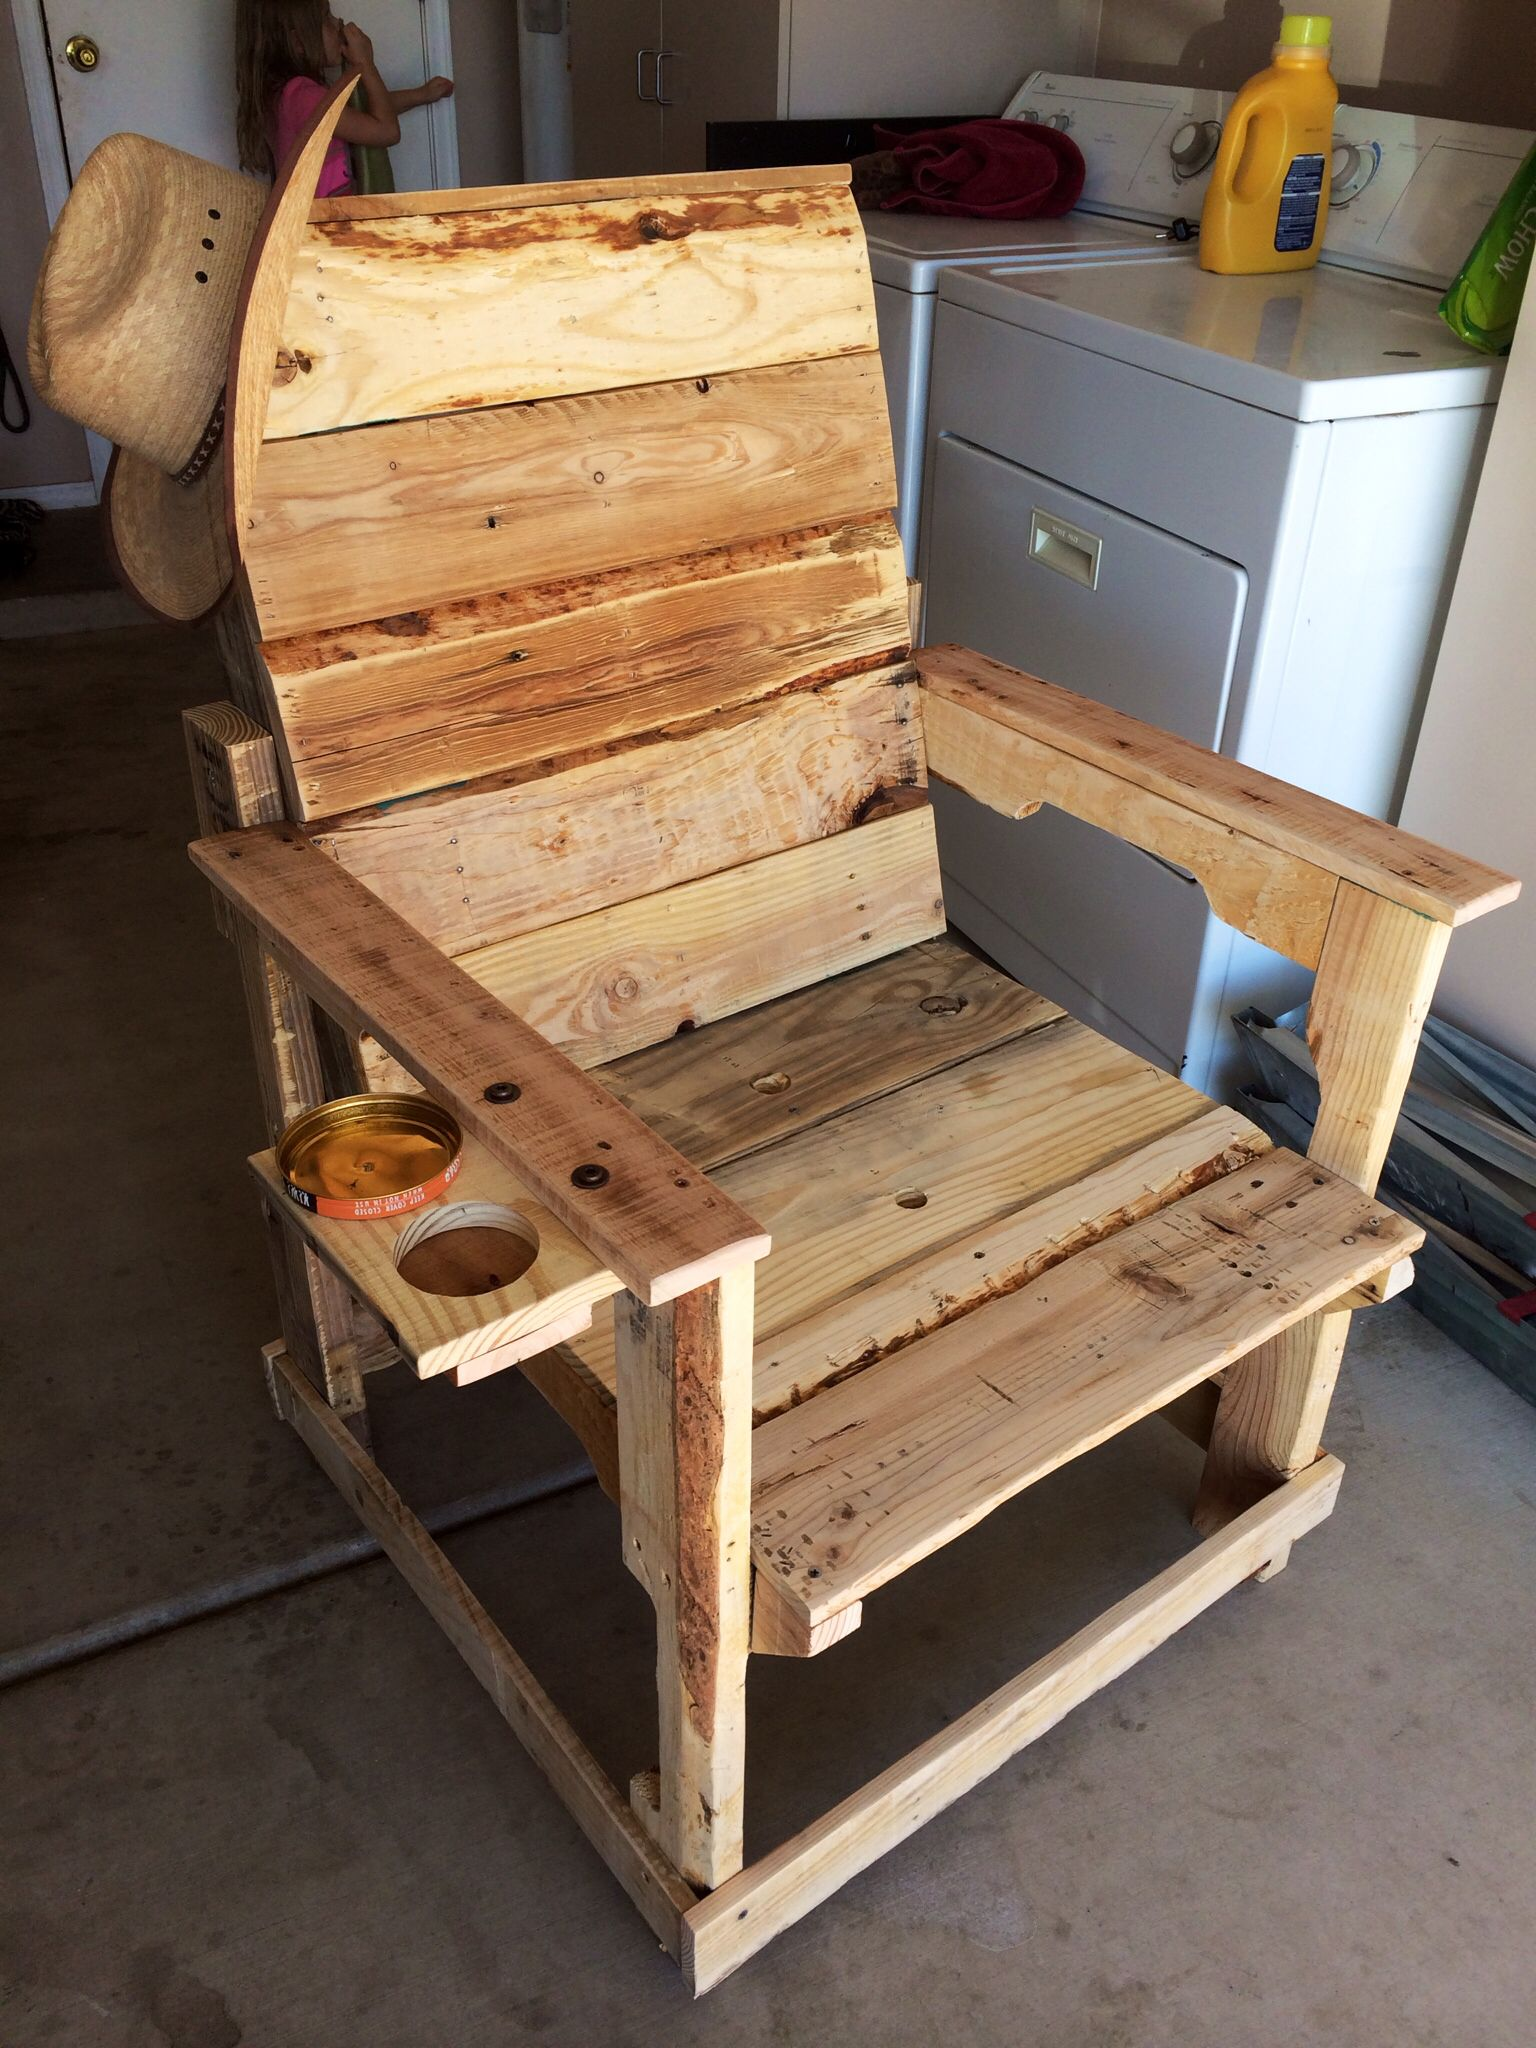 pallet wood chair cotton bar covers with ashtray and cup holder saddle soap